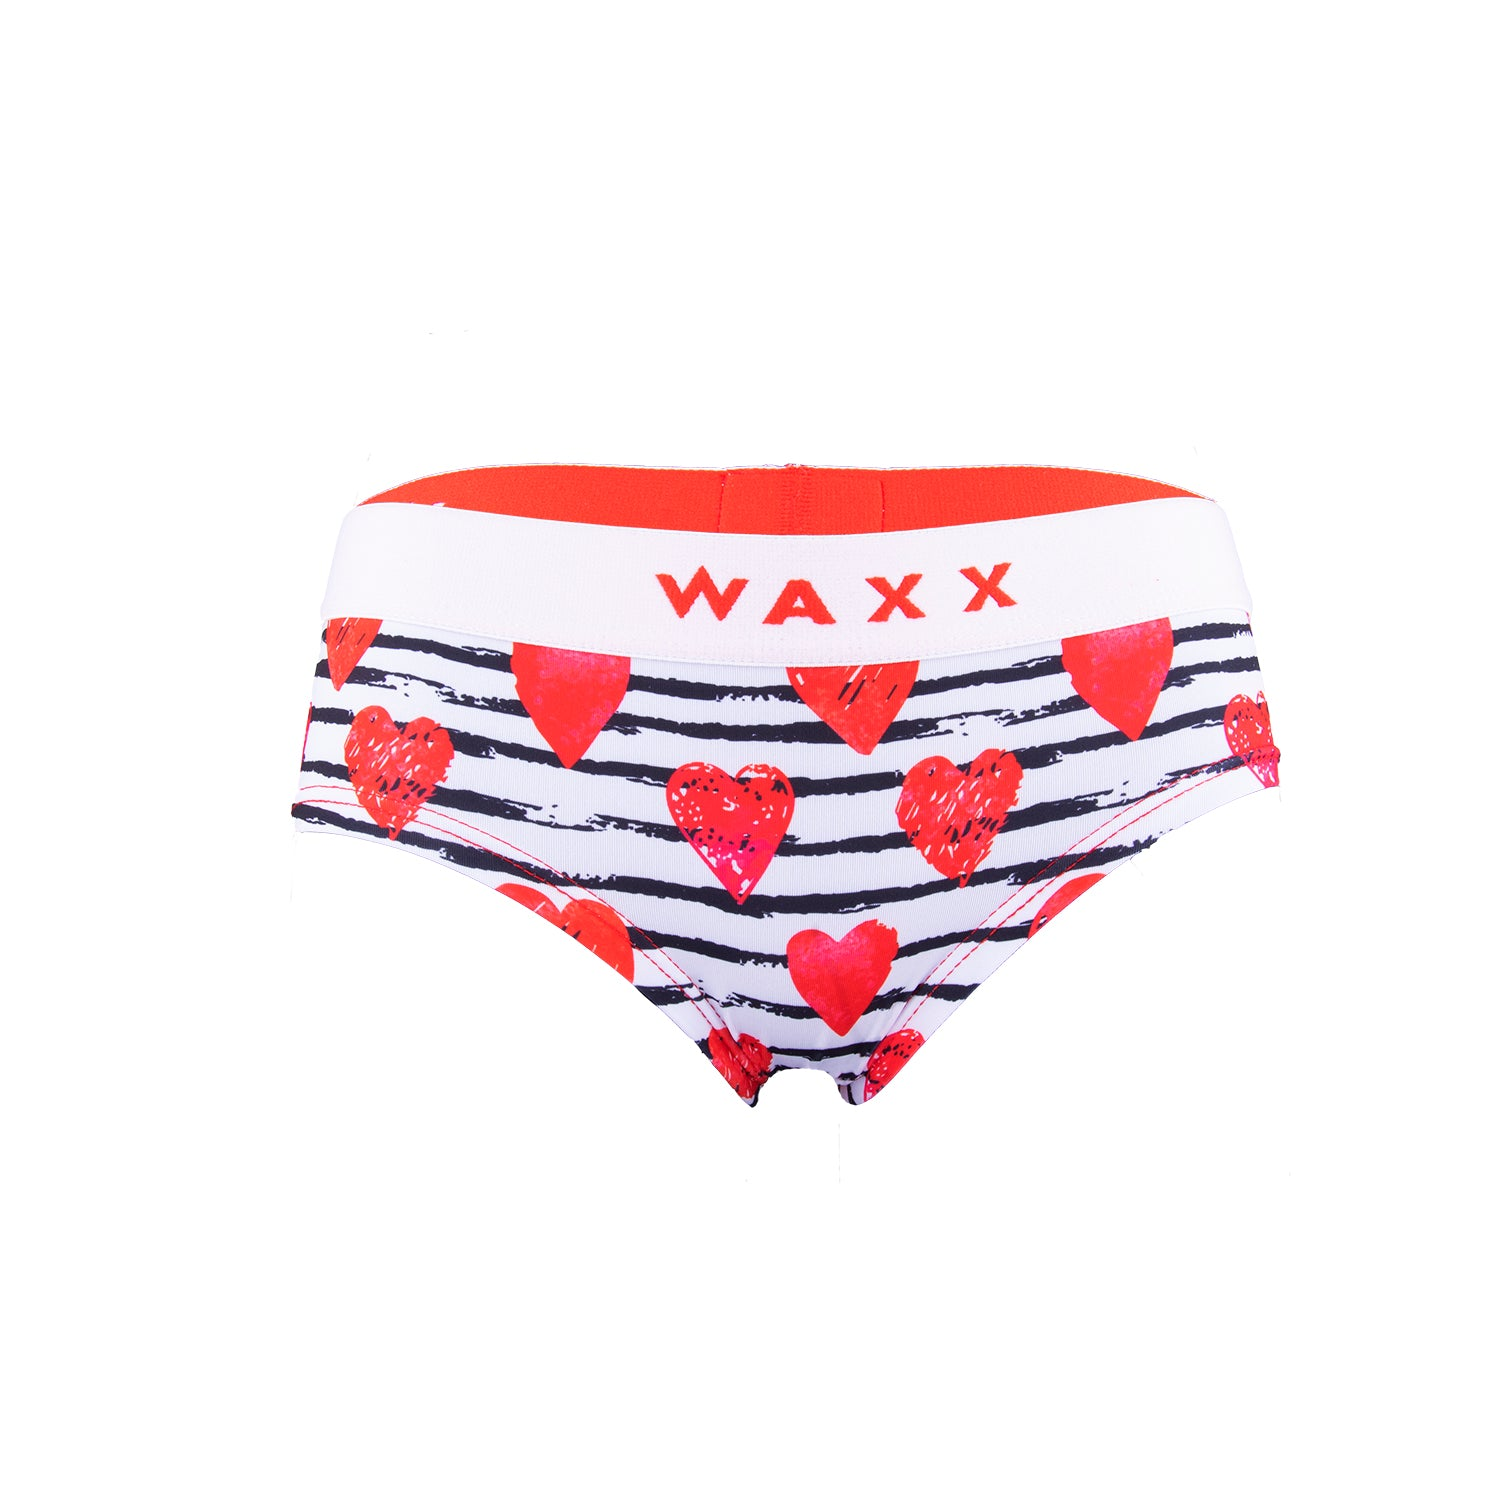 Waxx Women's Boy Short Lover